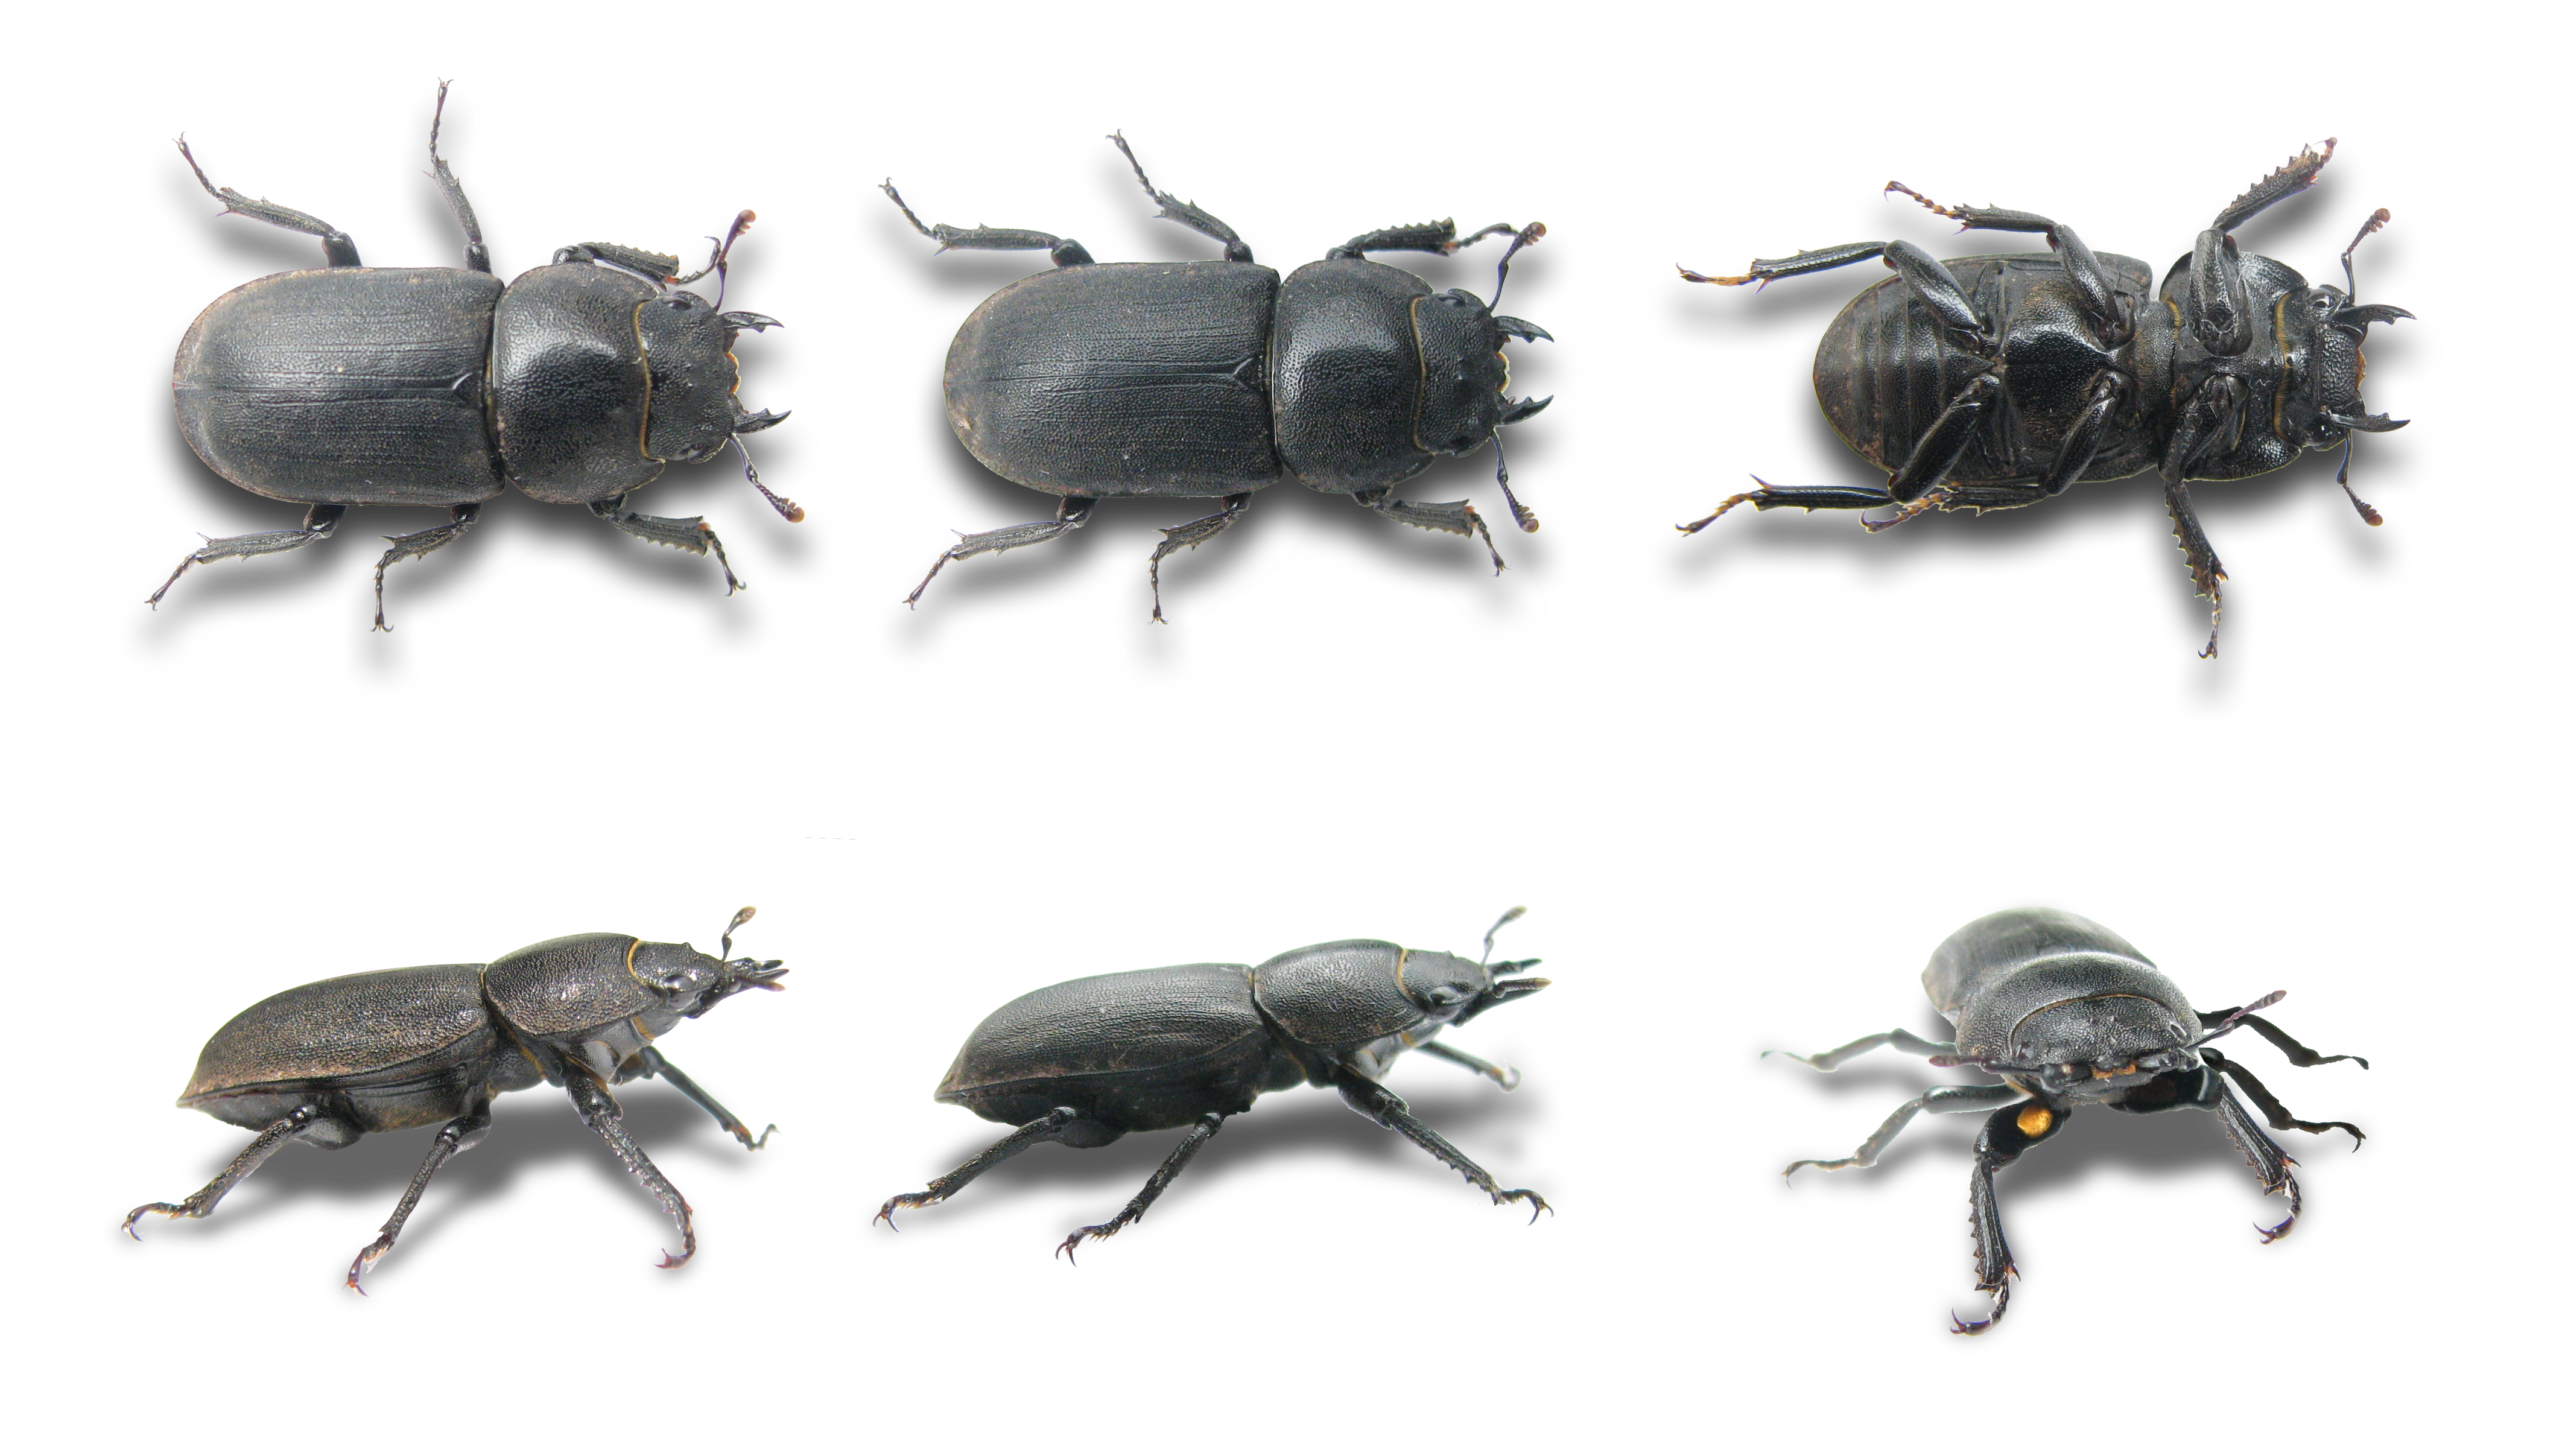 File:Dorcus parallelipipedus 6views.png.